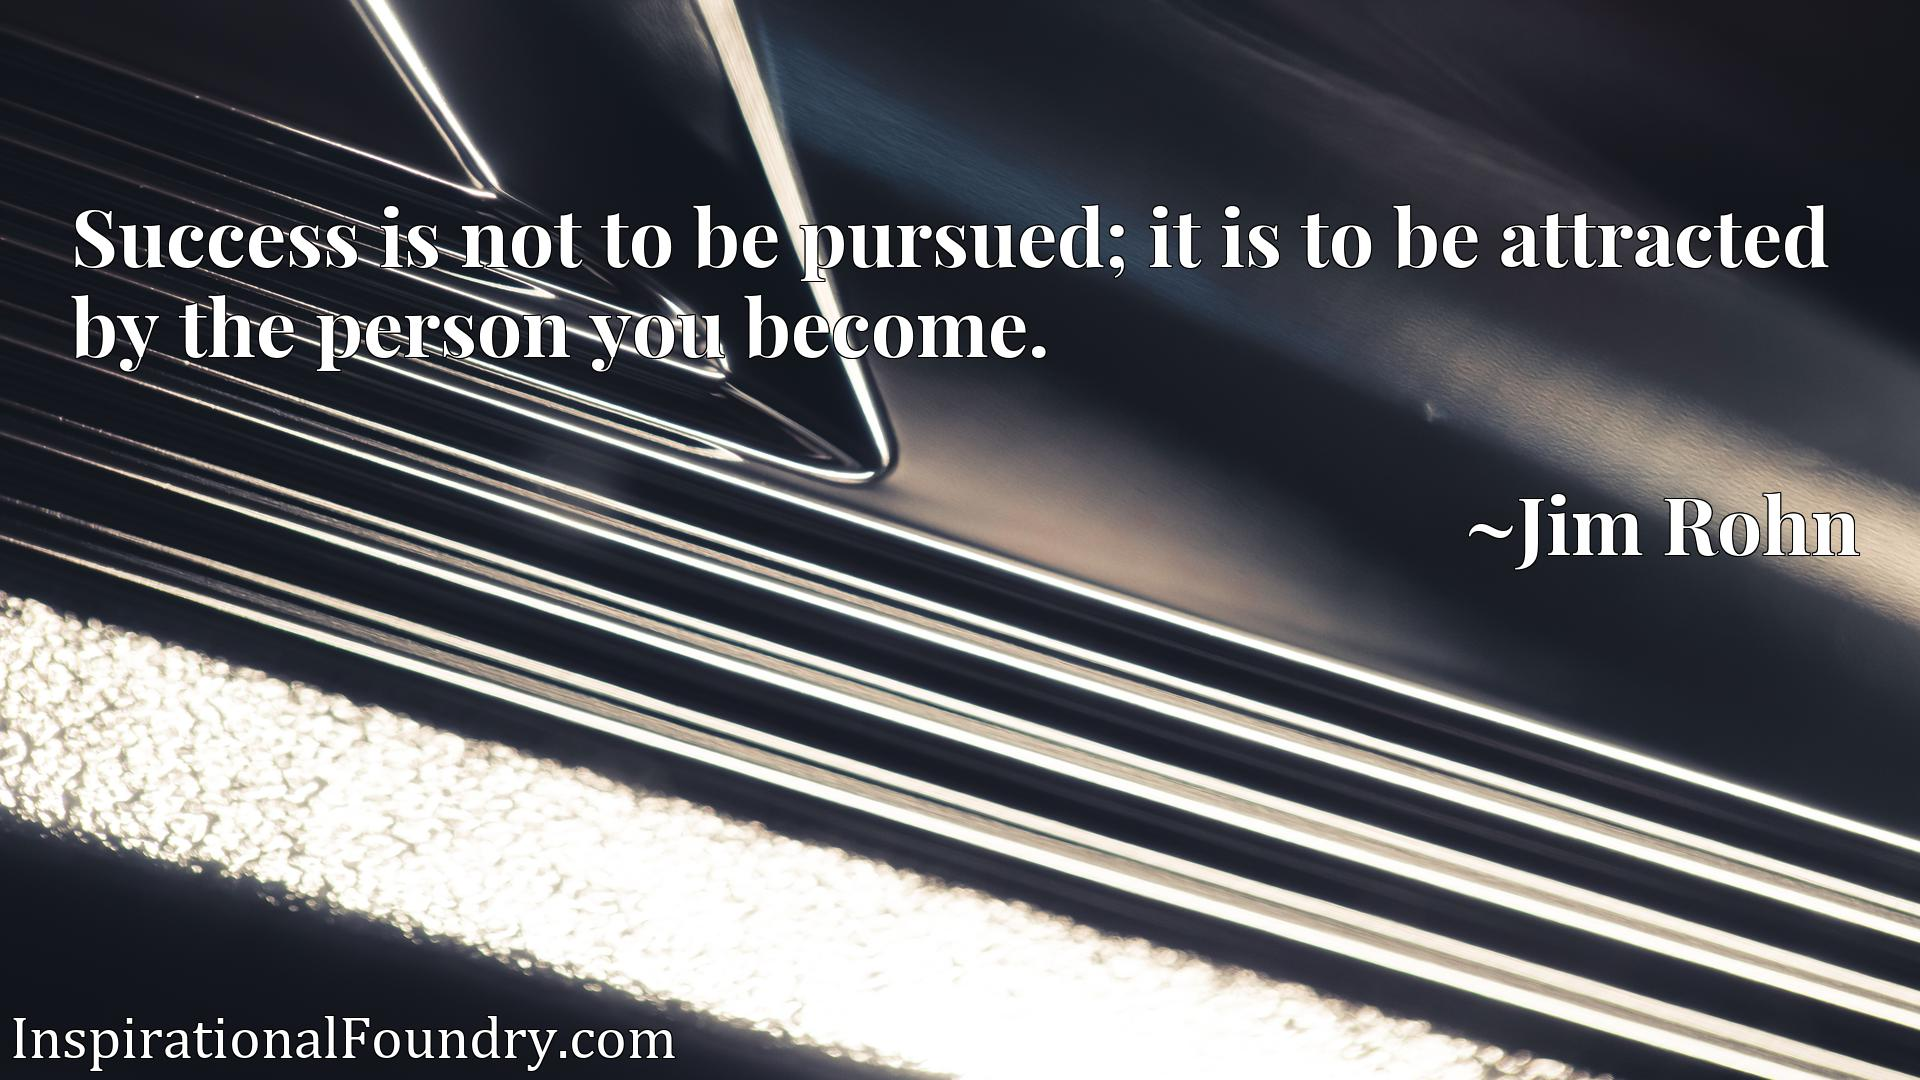 Success is not to be pursued; it is to be attracted by the person you become.